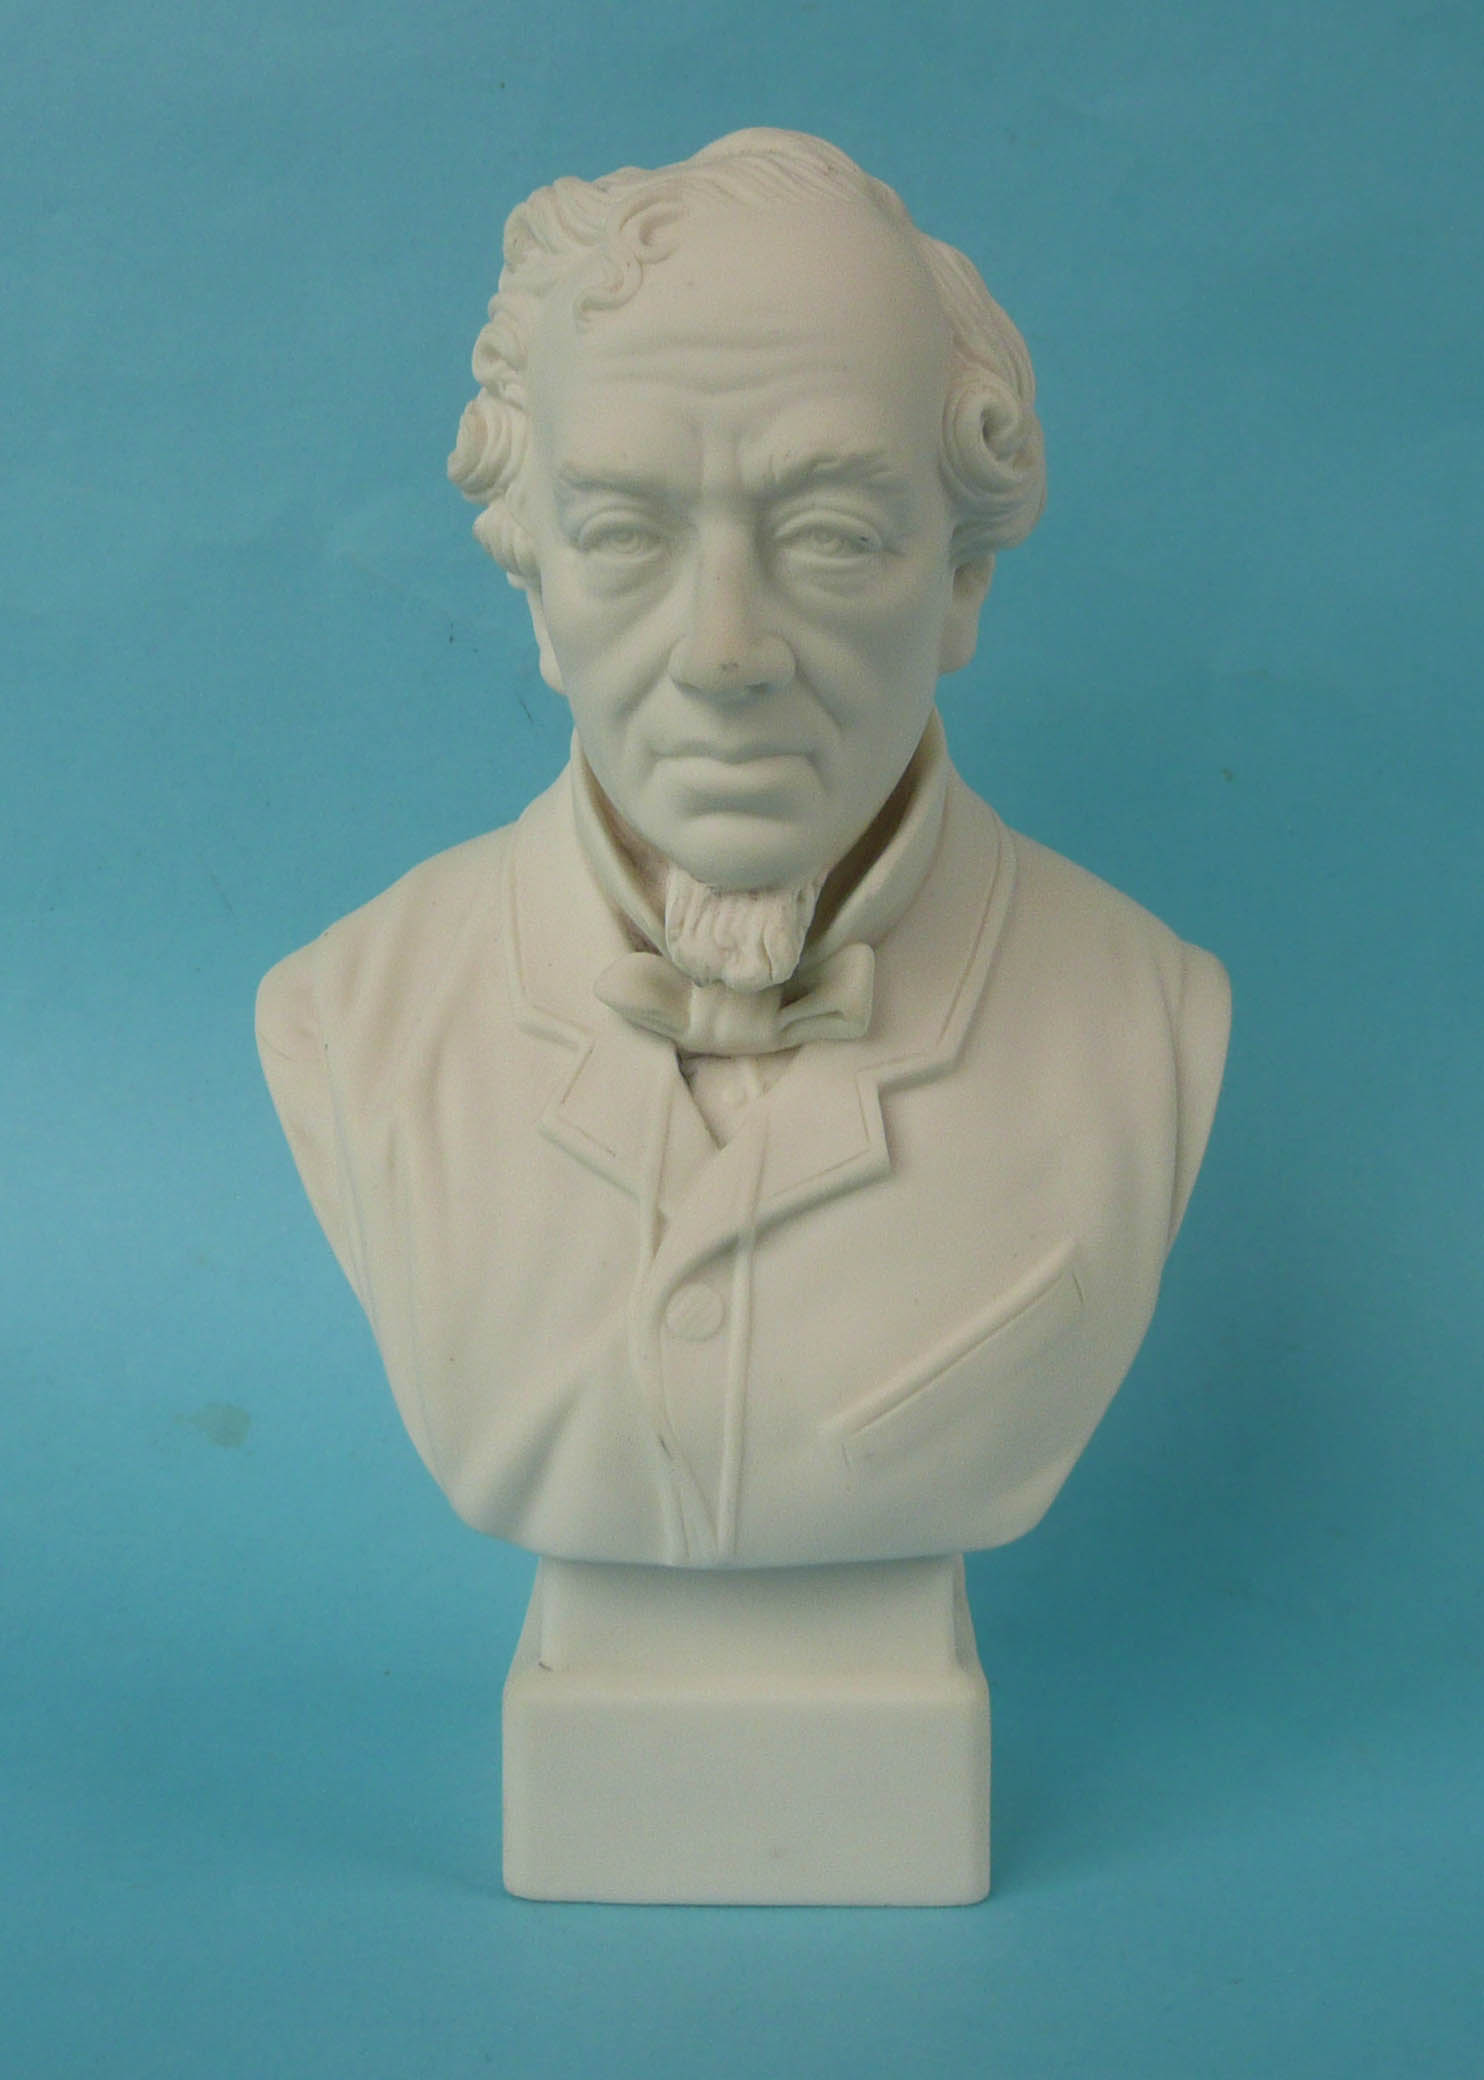 Lot 32 - Disraeli: a white parian portrait bust by Robinson & Leadbeater on integral square base, 261mm (